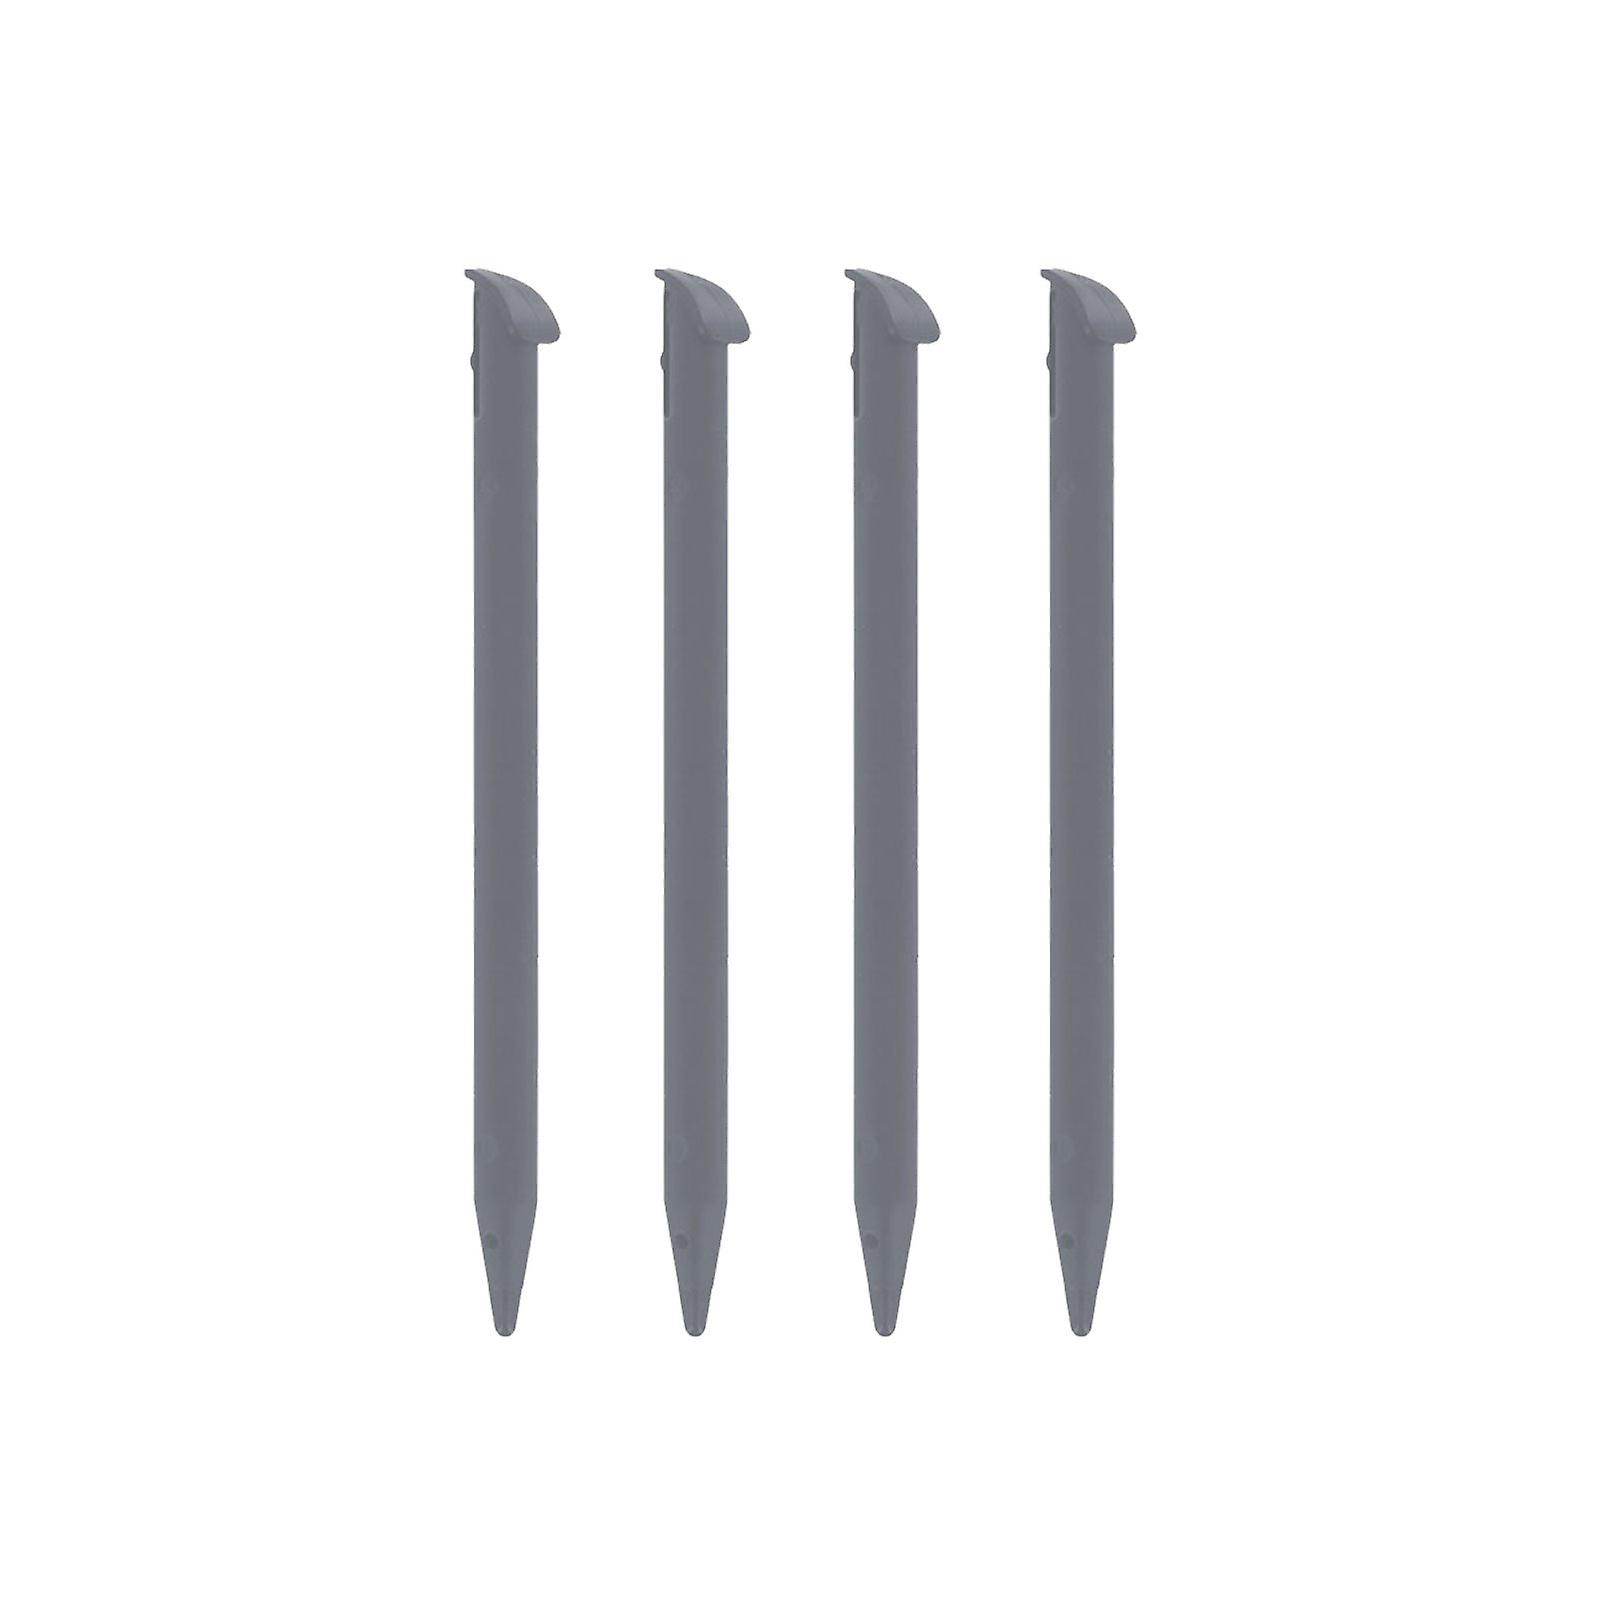 Replacement slot in touch stylus pens for snes edition nintendo new 3ds xl (2015 model) - 4 pack grey